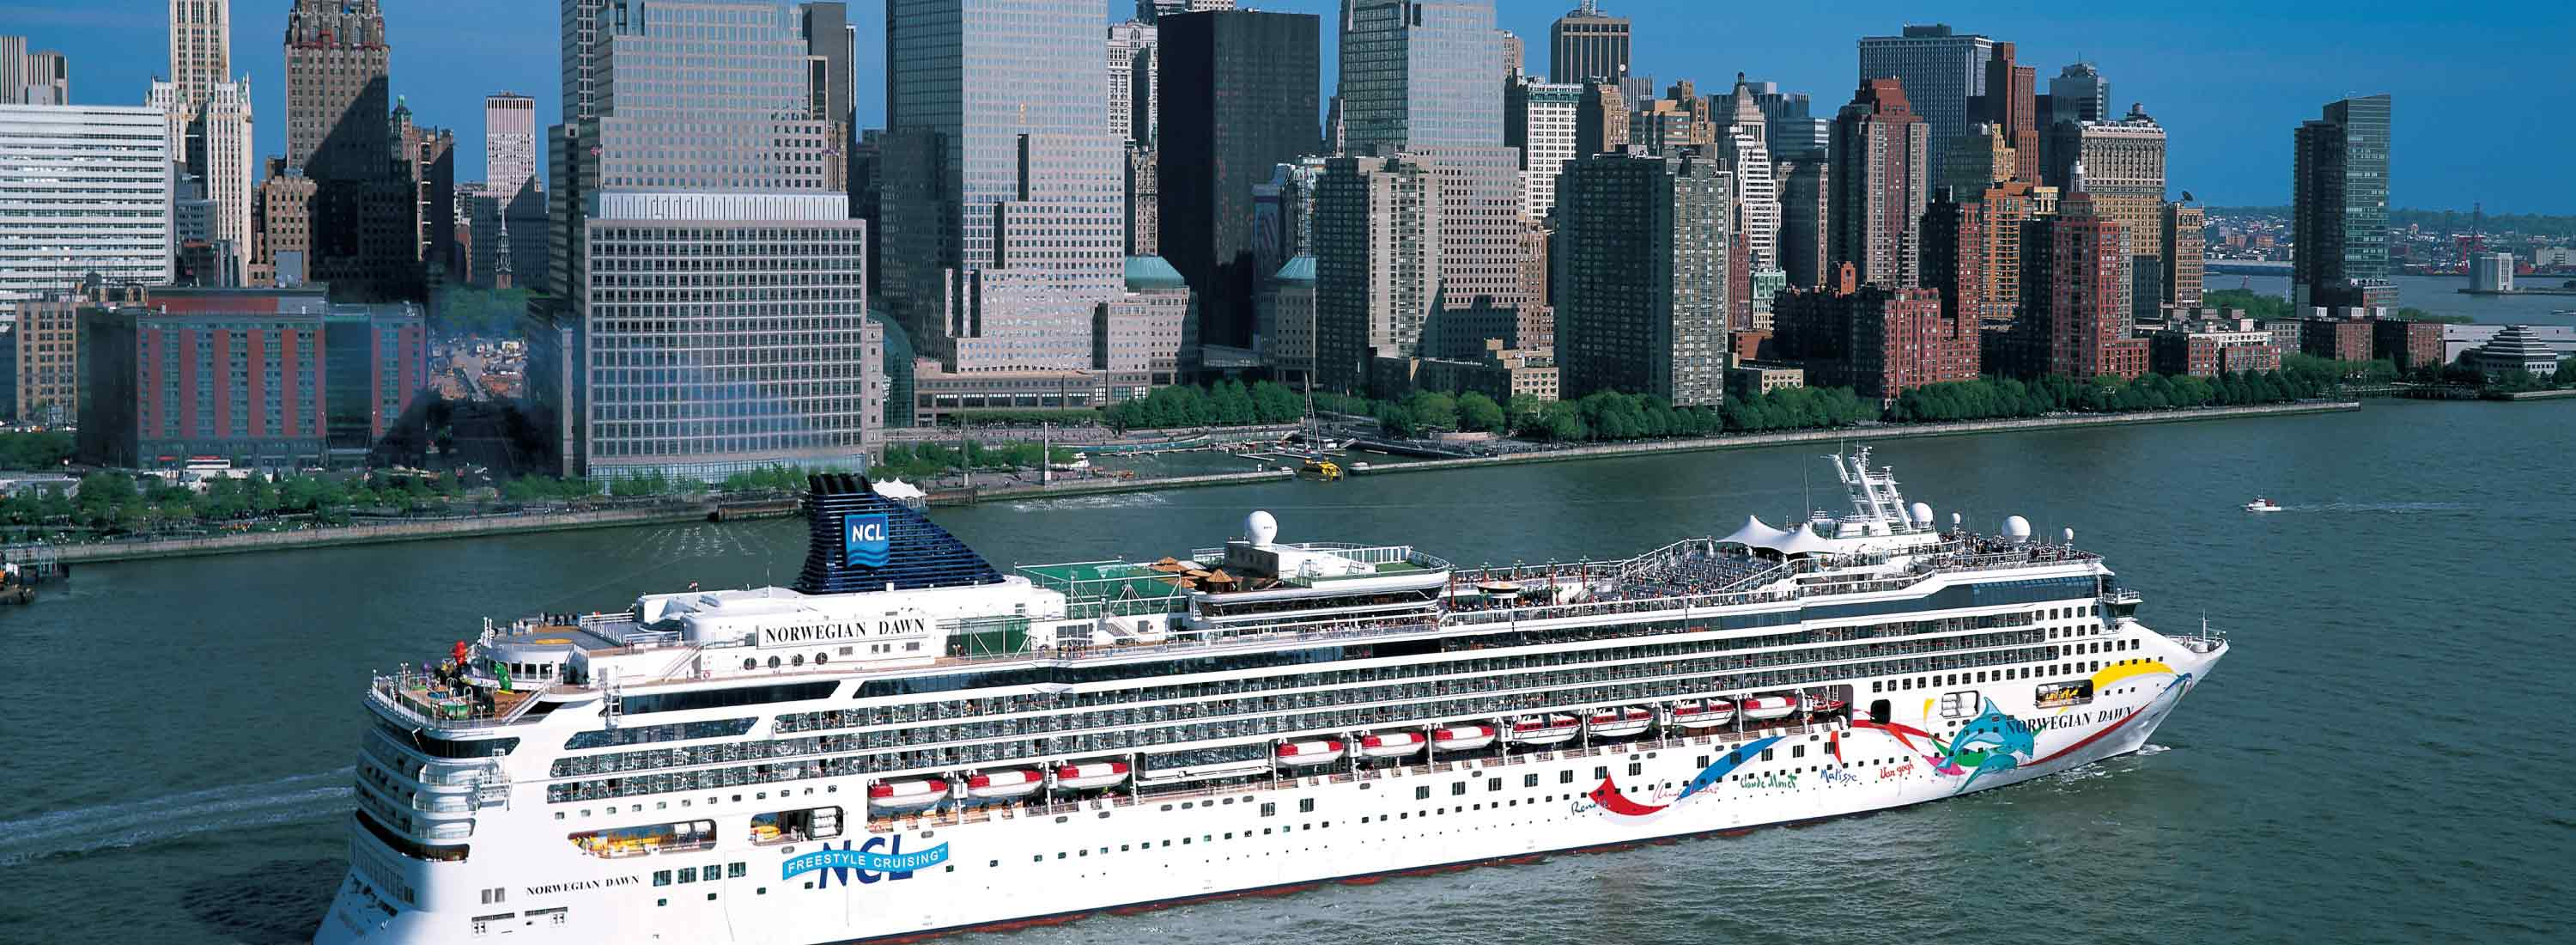 Hot Connection with swinger for ncl cruise the